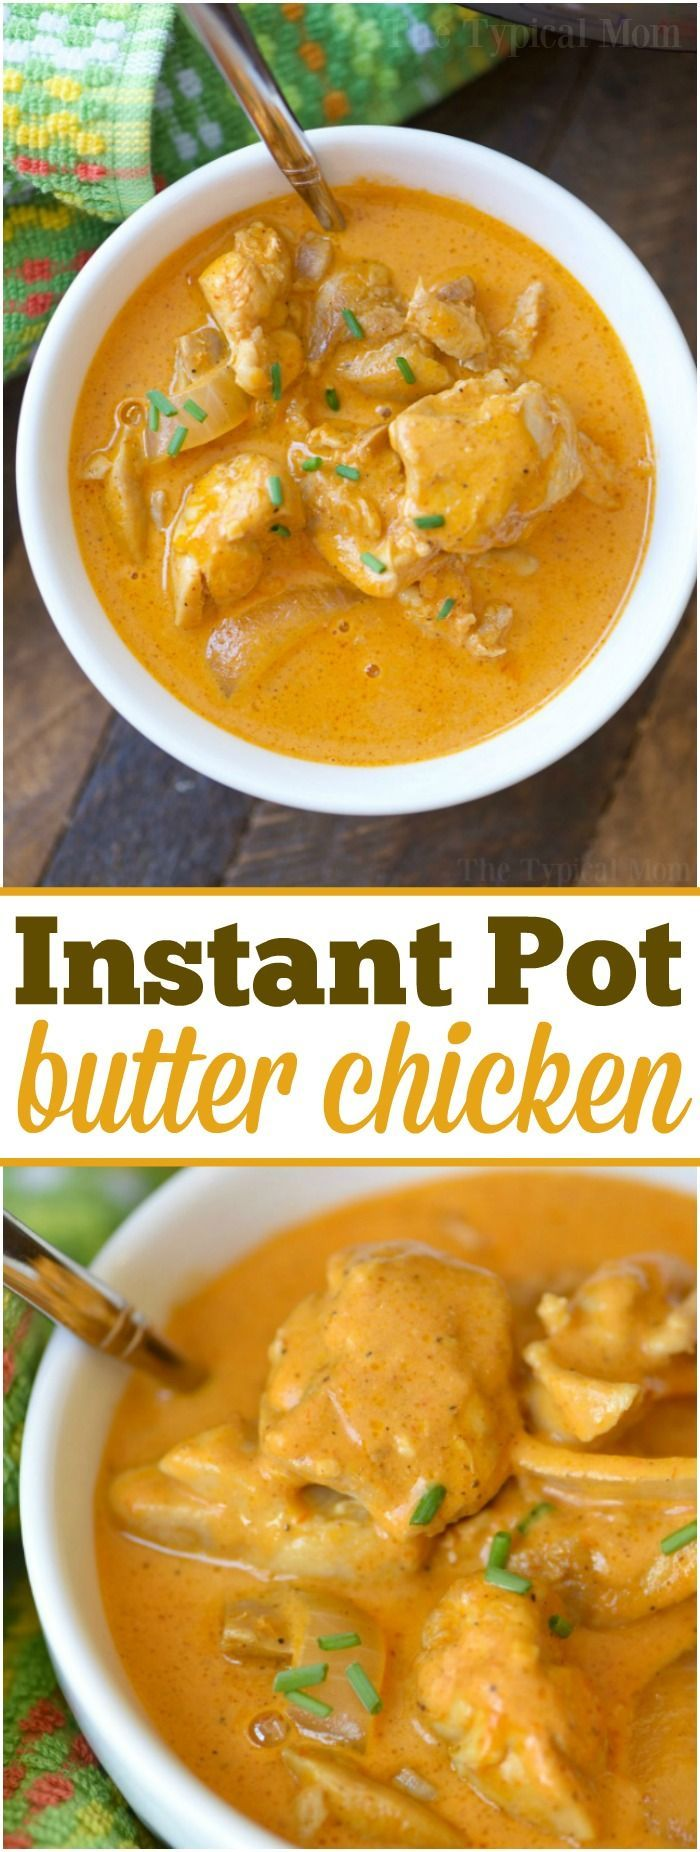 Easy Instant Pot Butter Chicken